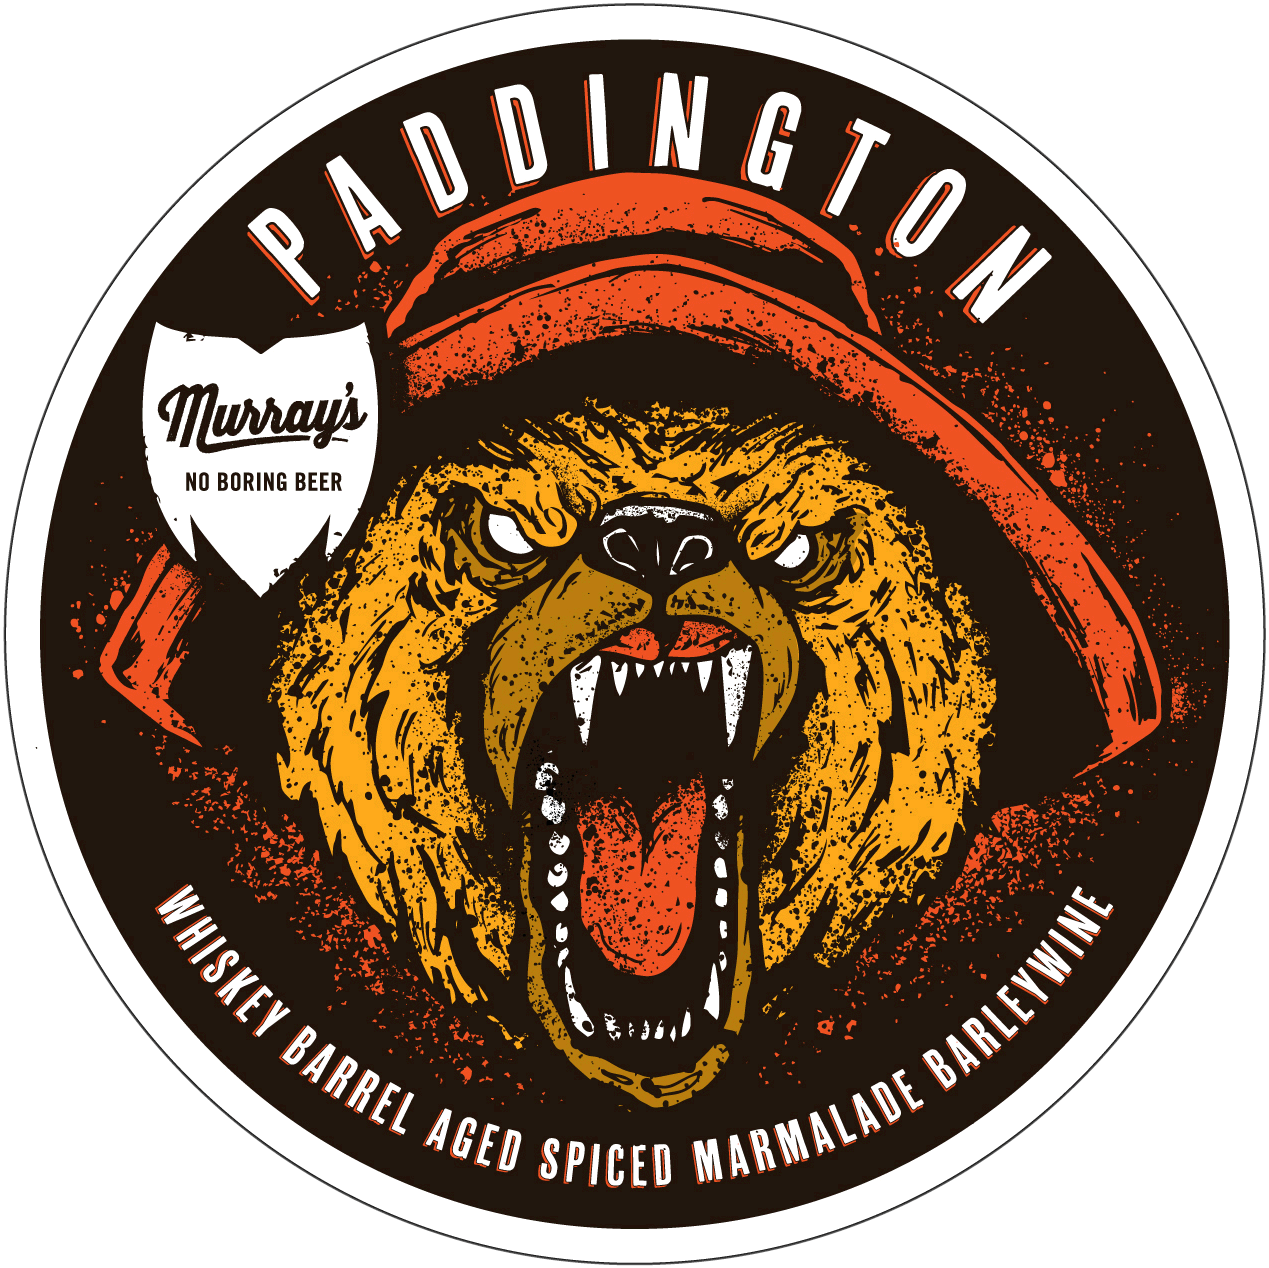 Paddington Beer